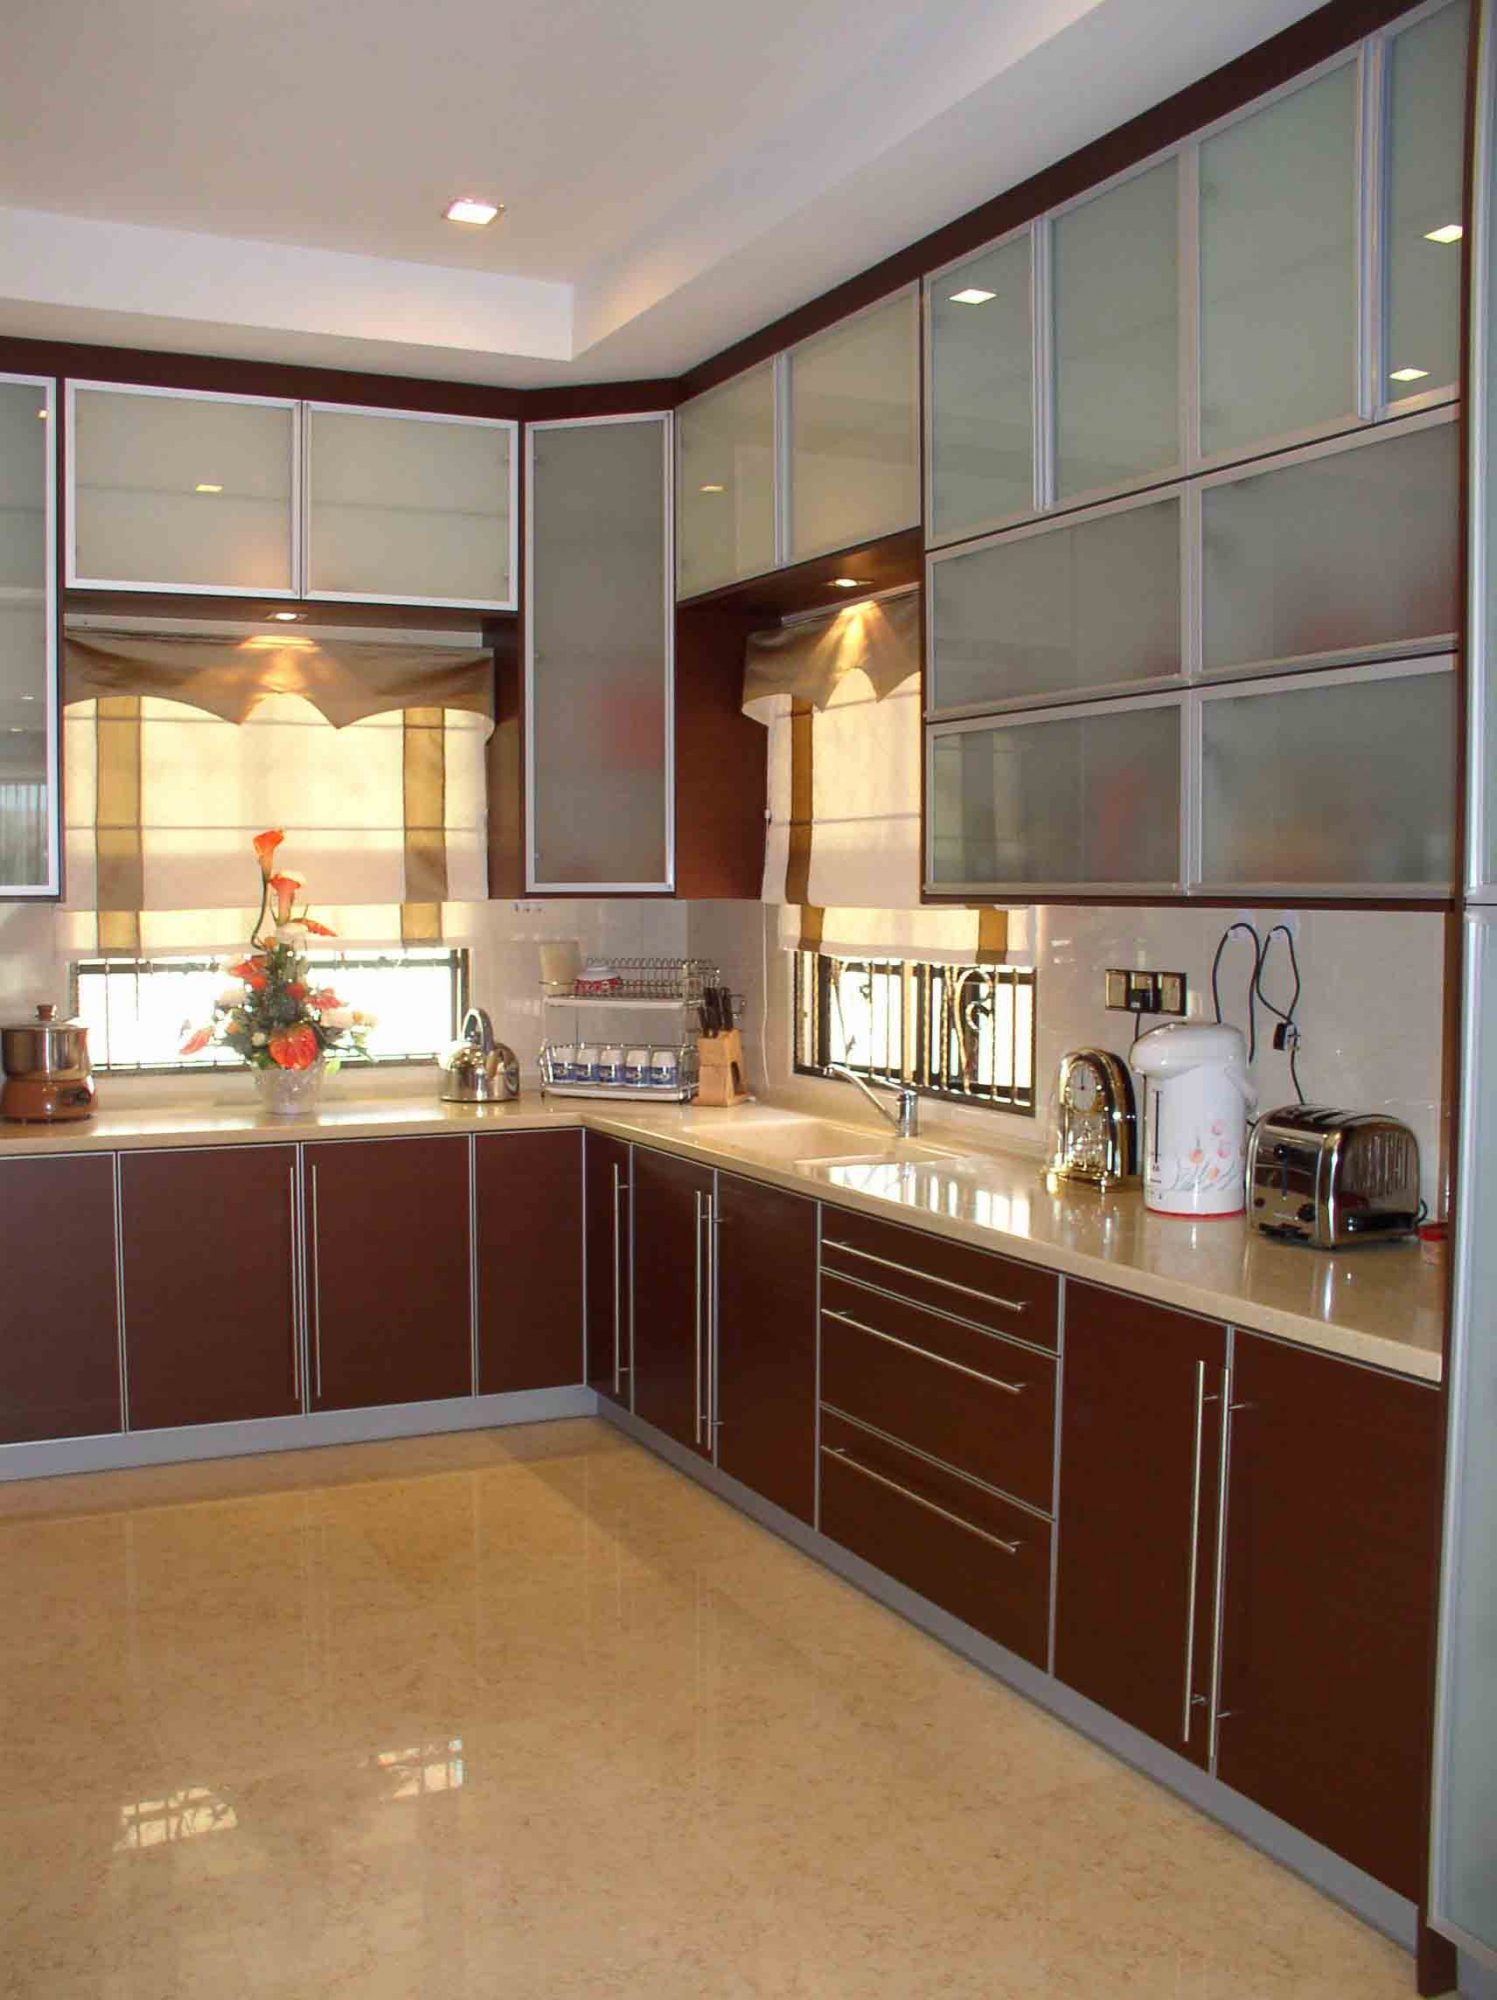 Kitchen Cabinets Design Video 20 Popular Kitchen Cabinet Designs In Malaysia Recommend